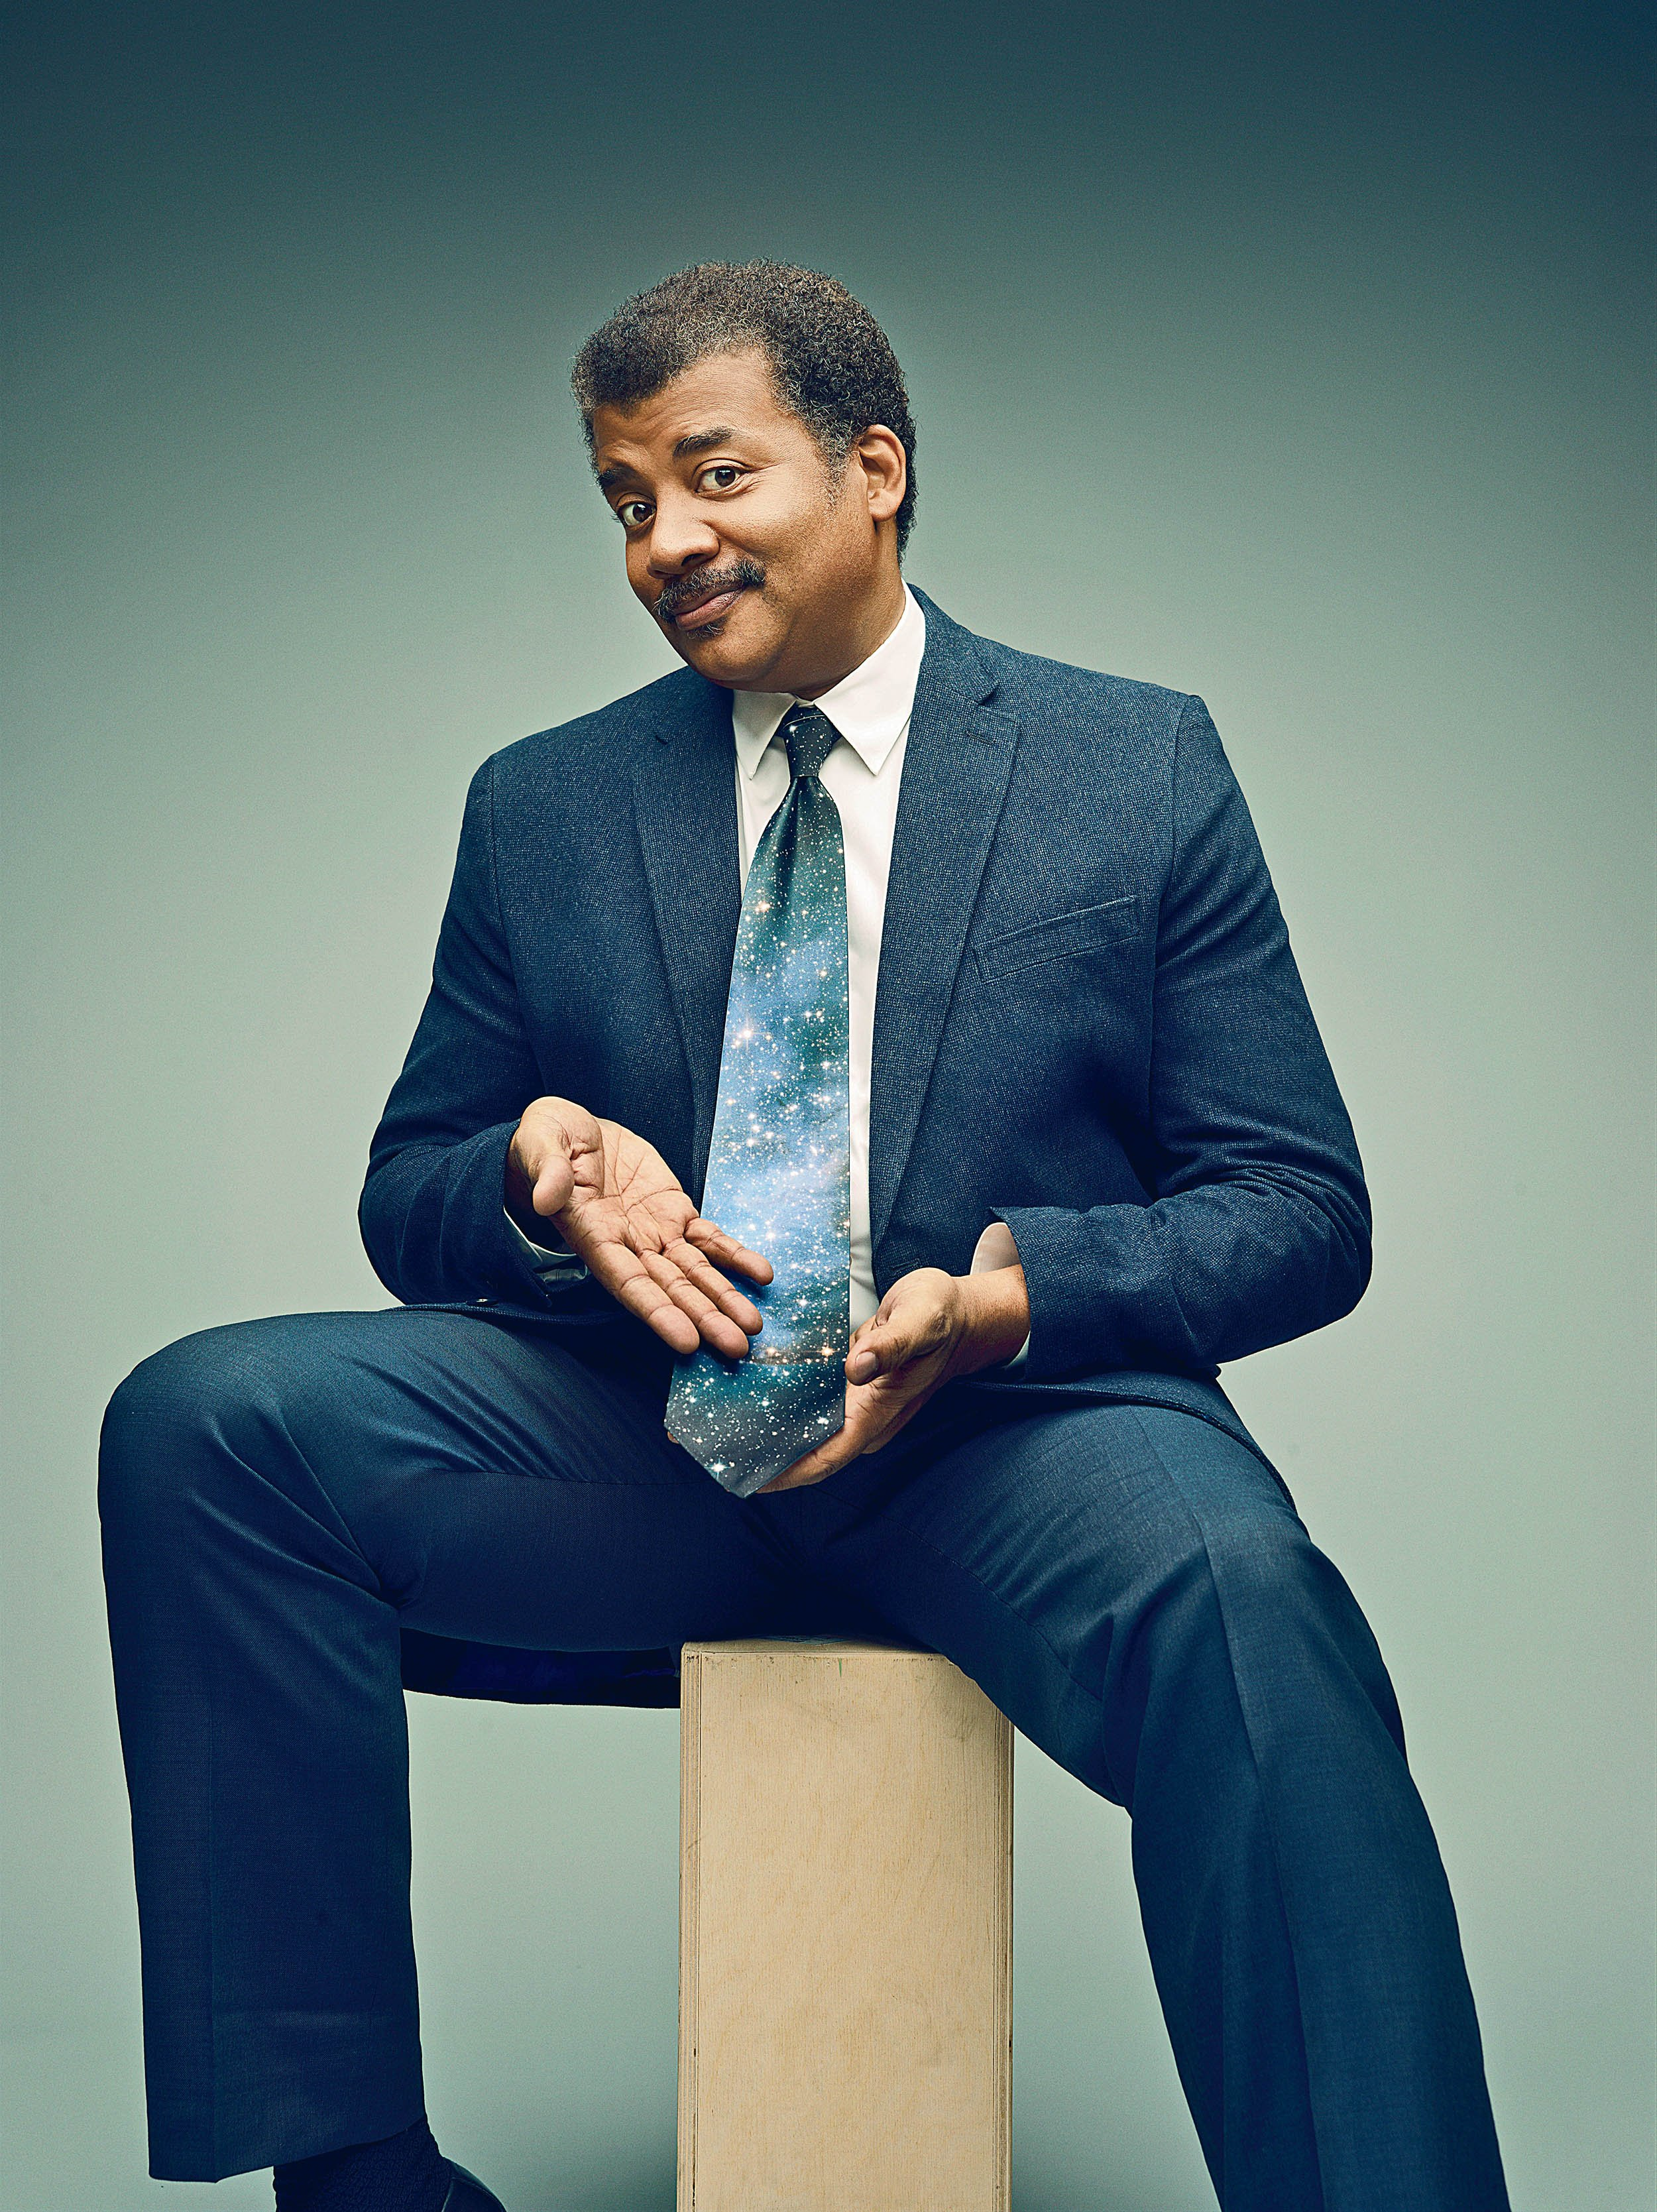 neil degrasse tyson is on your tv  on a mission